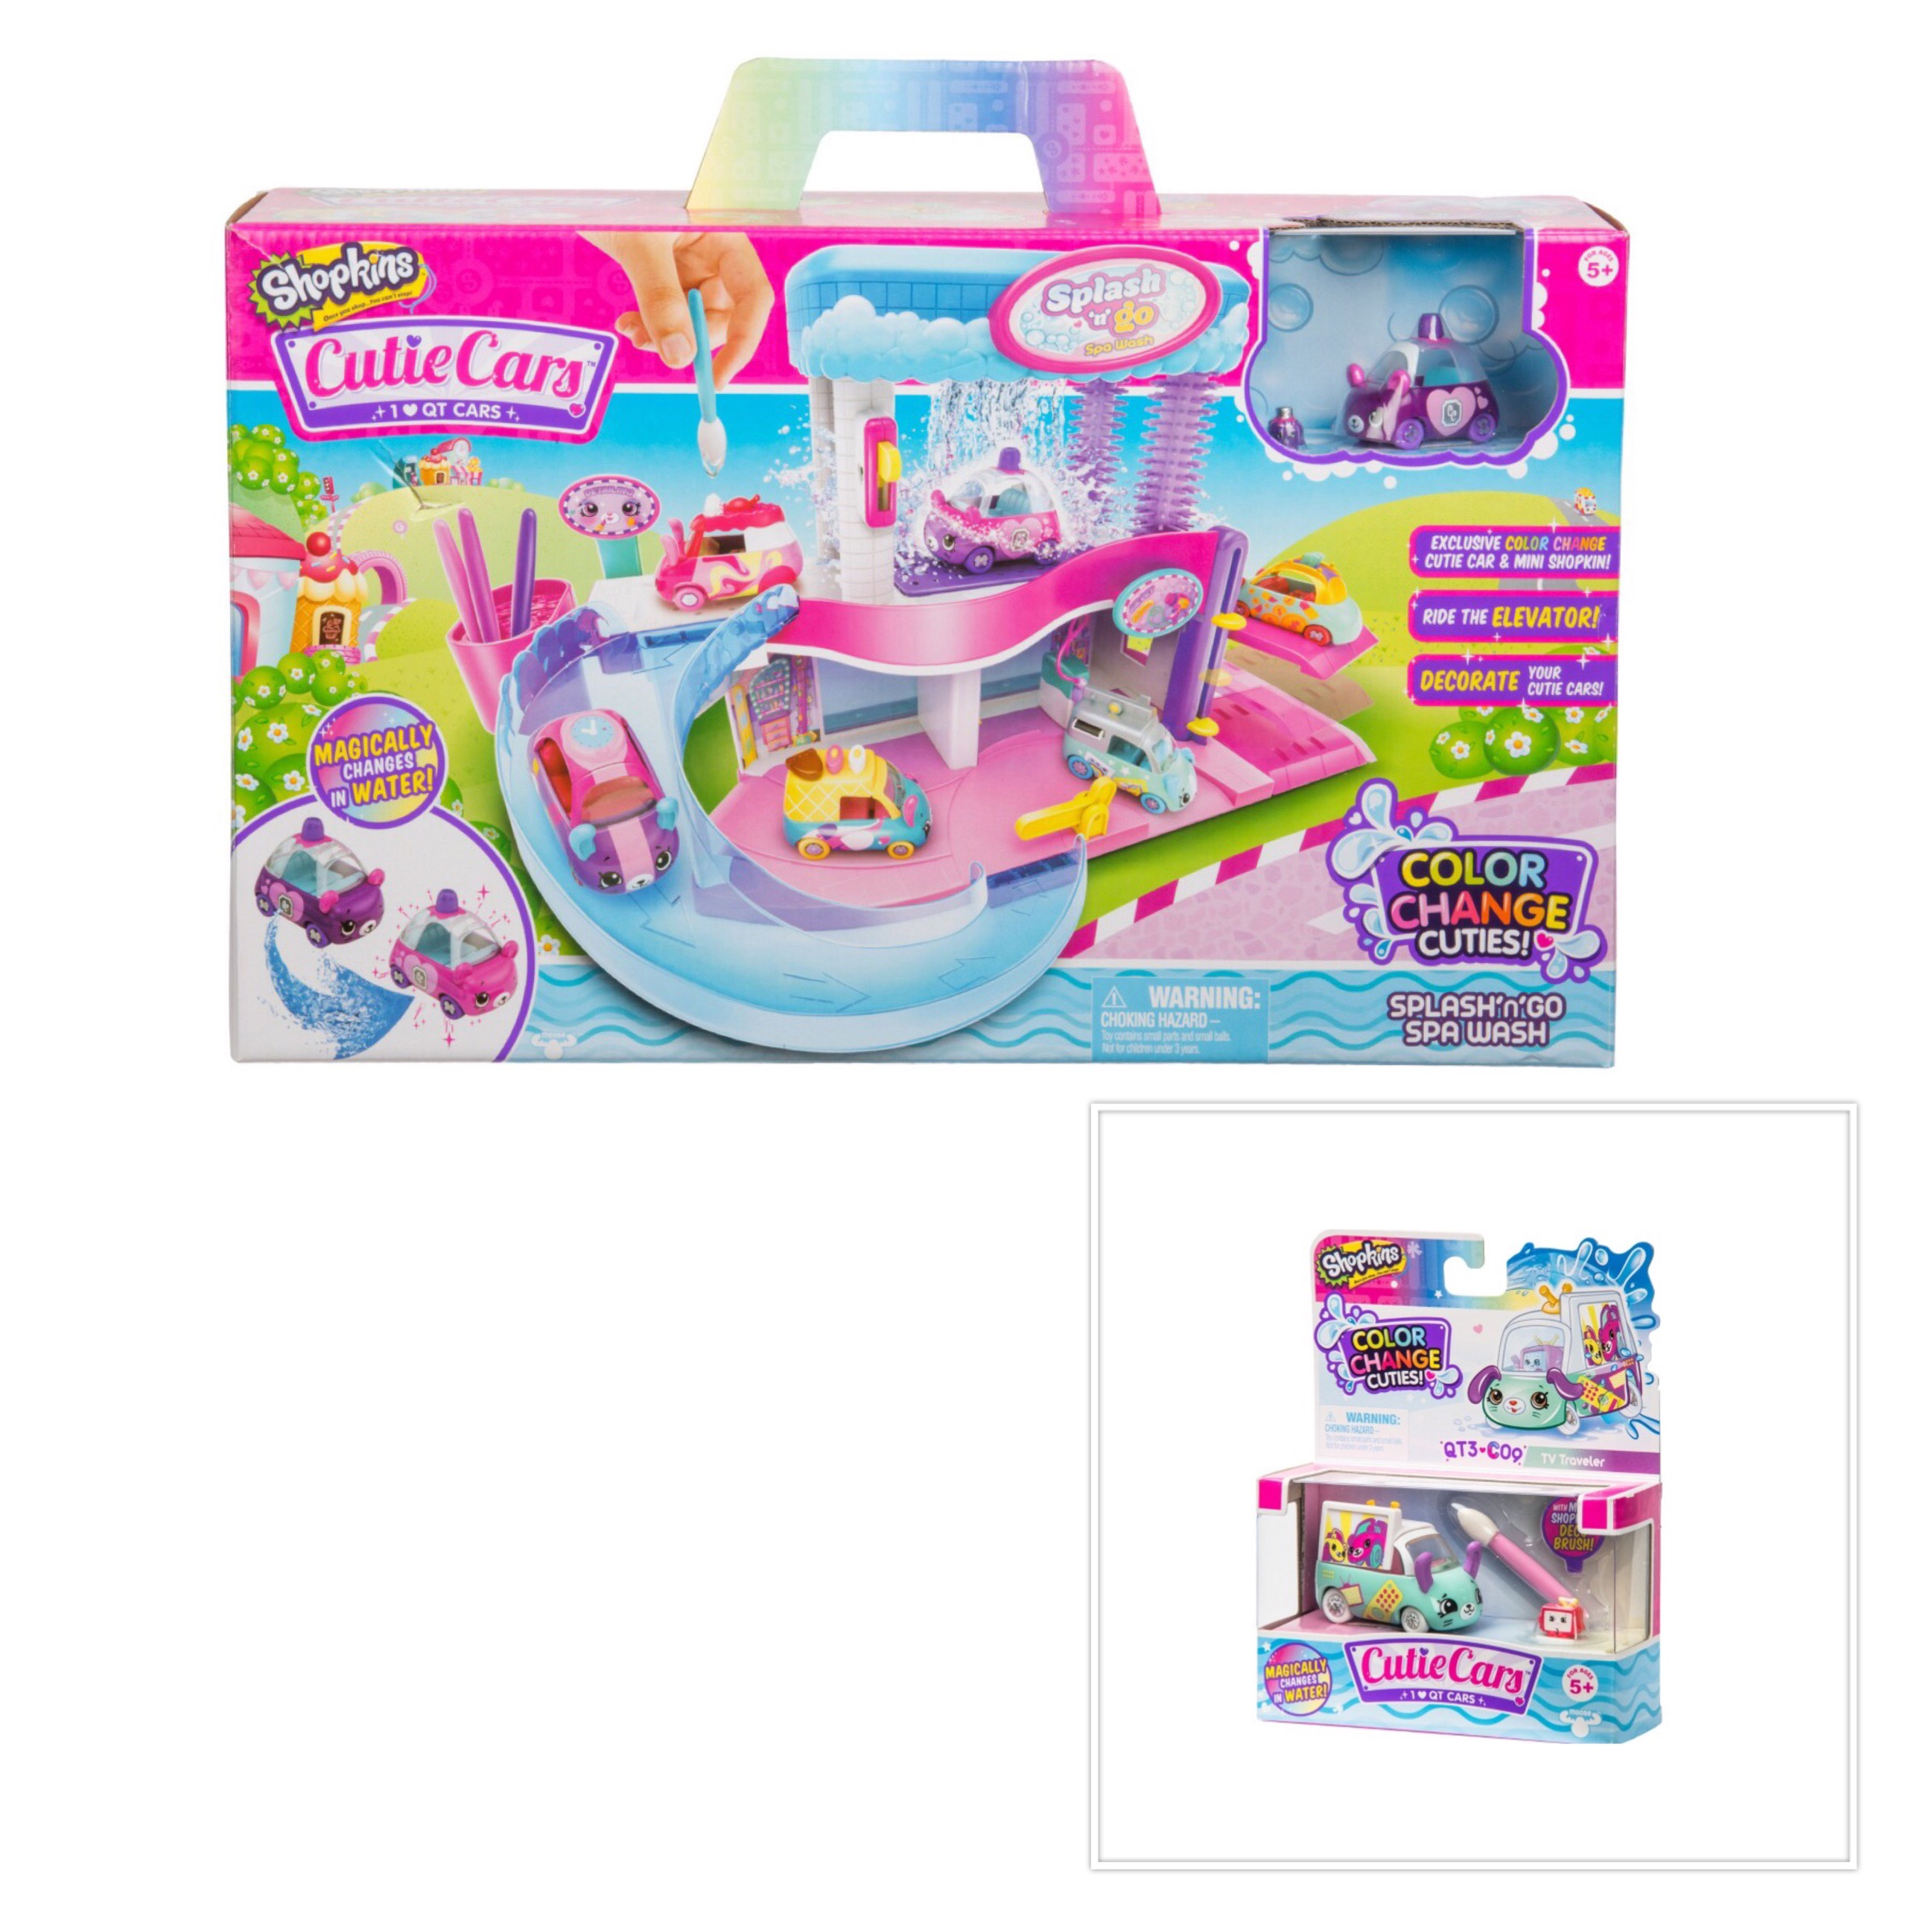 Shopkins Cutie Cars Spa Wash Playset and Color Change ...